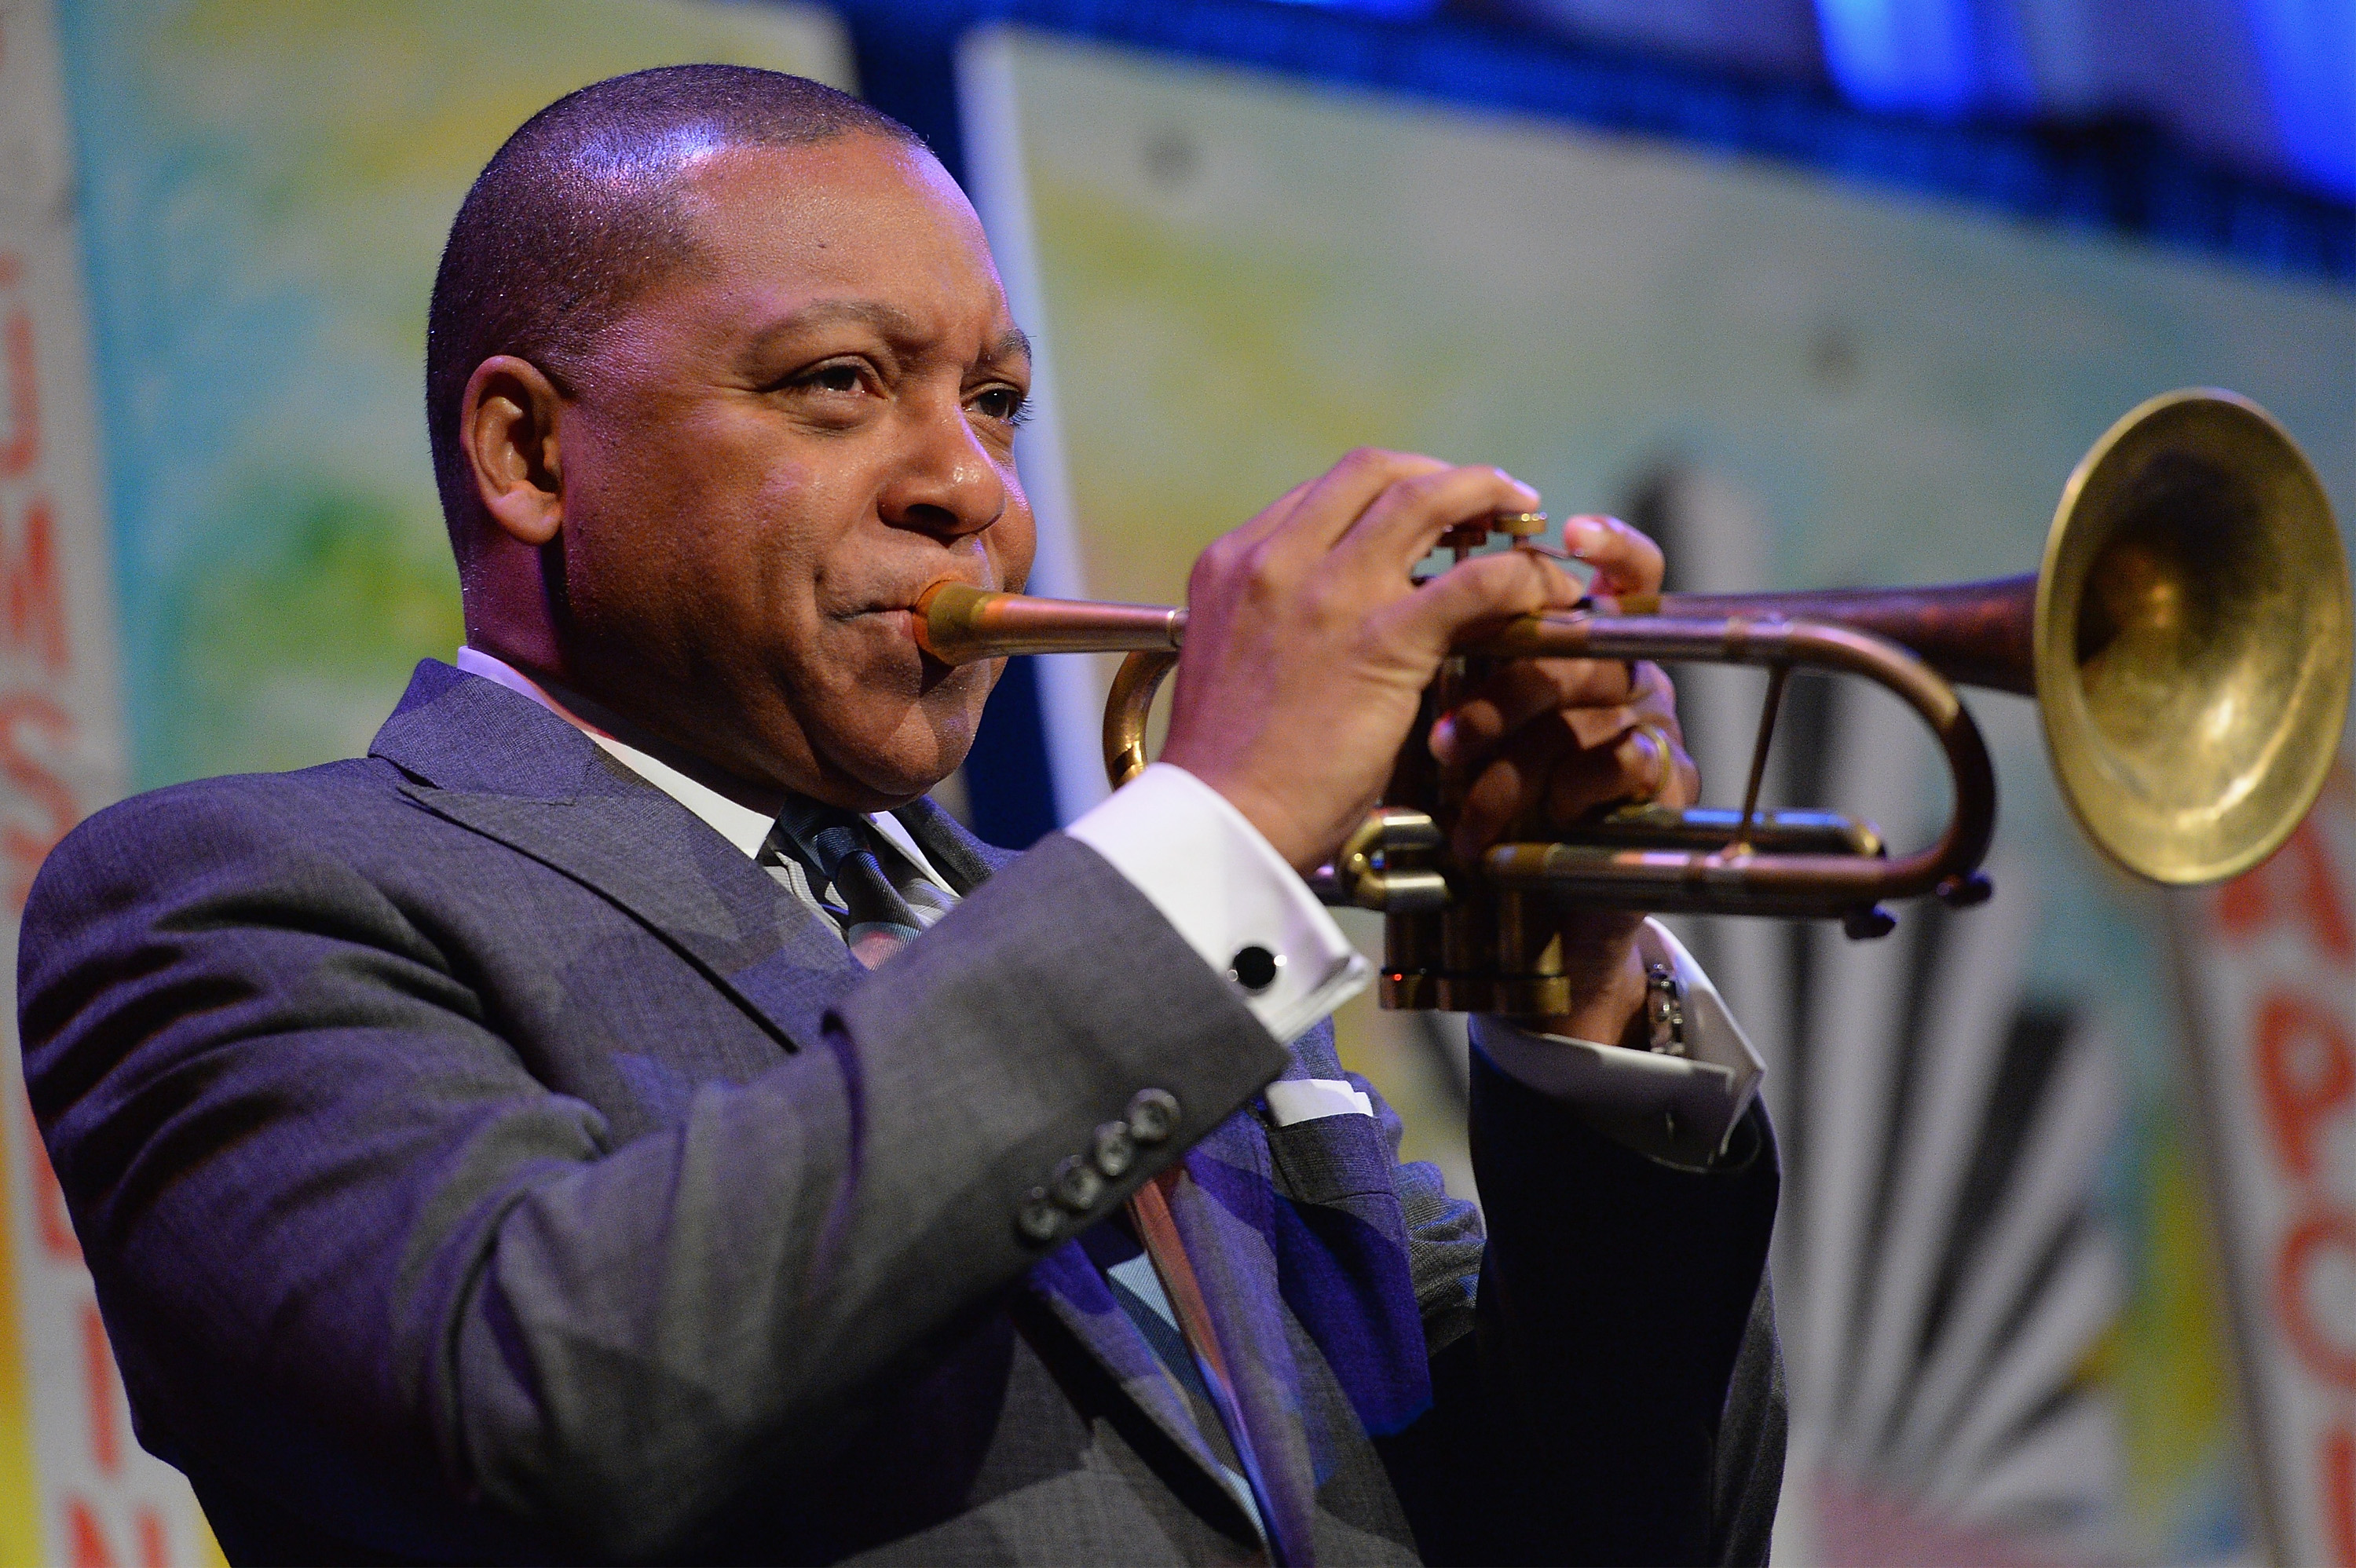 Musician Wynton Marsalis performs onstage during the Northside Center for Child Development 70th Anniversary Spring Gala at Cipriani 42nd Street on April 27, 2016 in New York City.